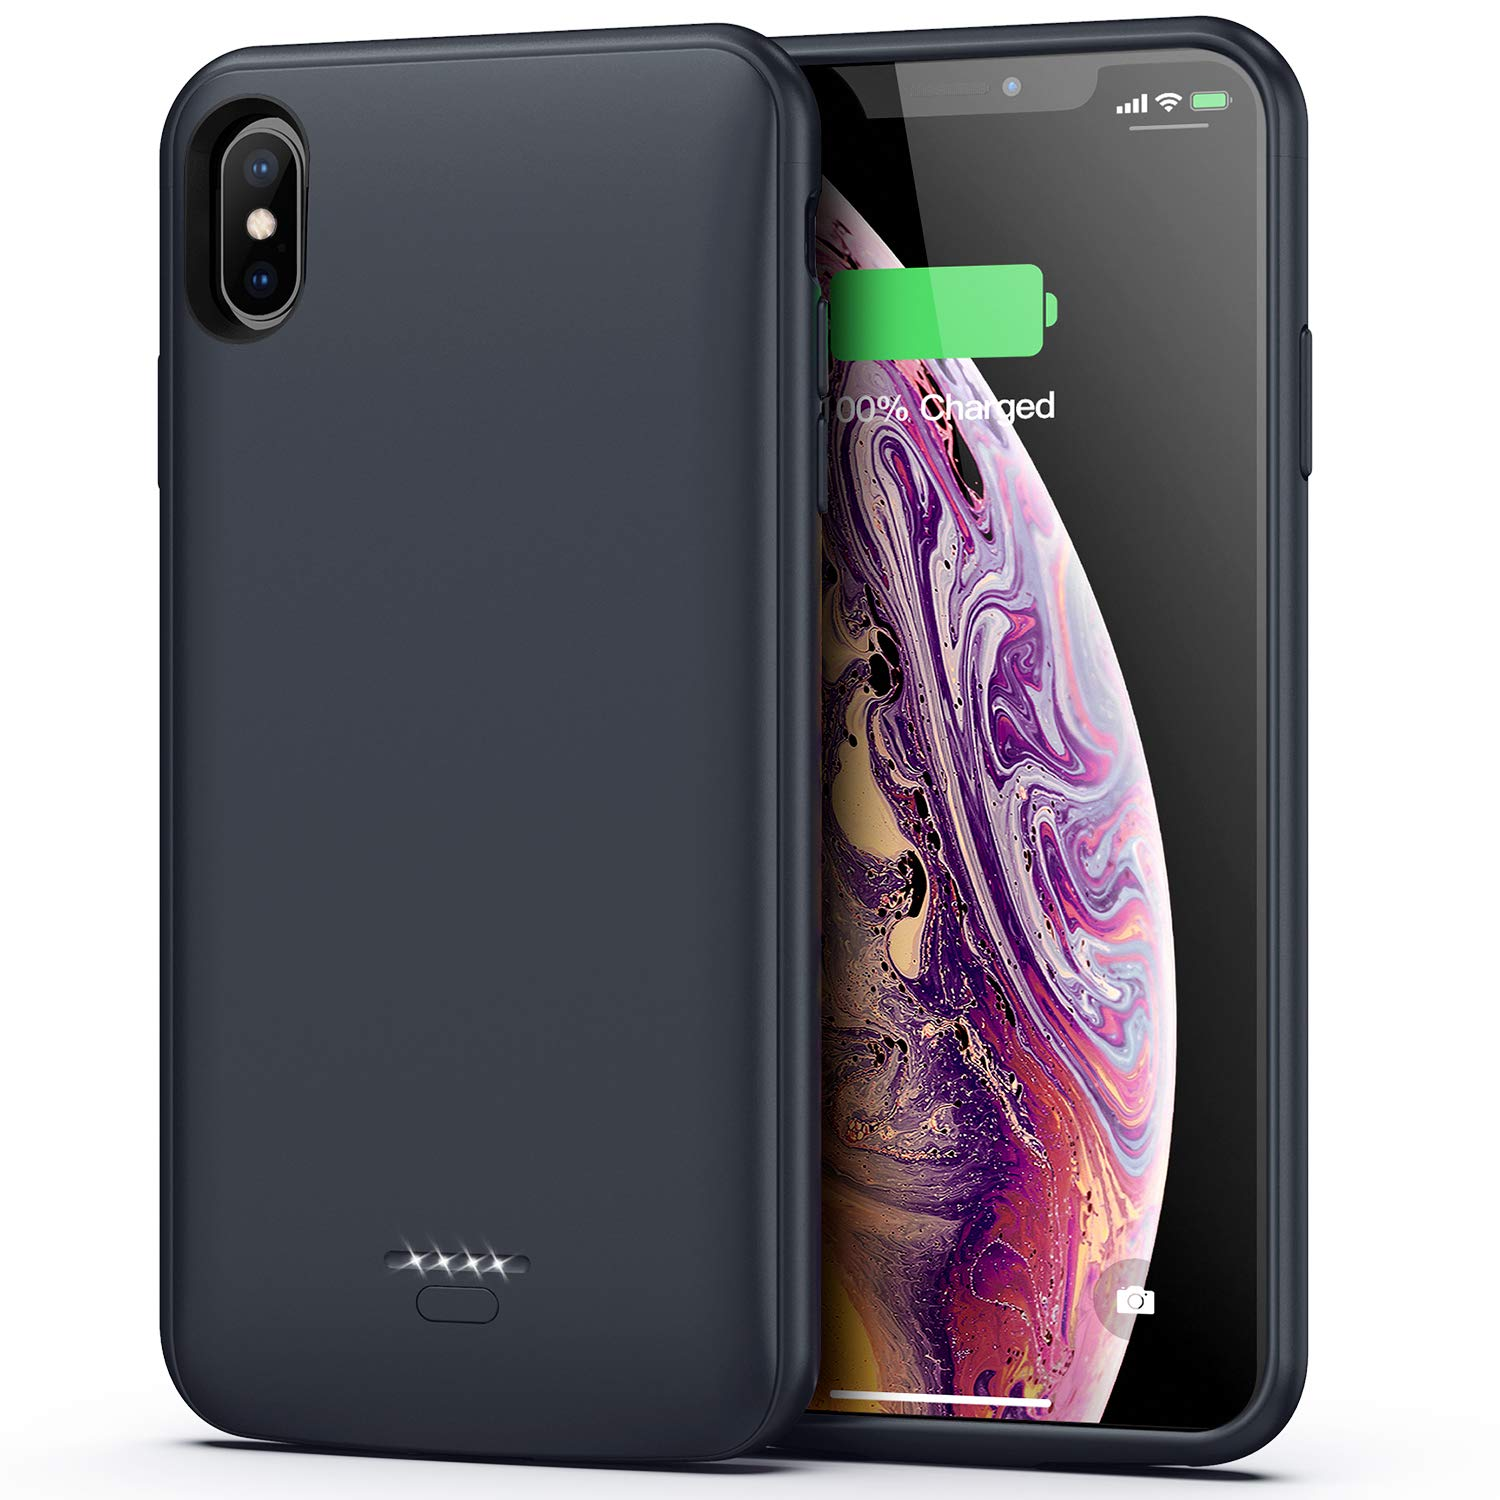 Battery Case for iPhone Xs Max, 5000mAh Portable Protective Charging Case Compatible with iPhone Xs Max (6.5 inch) Rechargeable Extended Battery Charger Case (Grey)